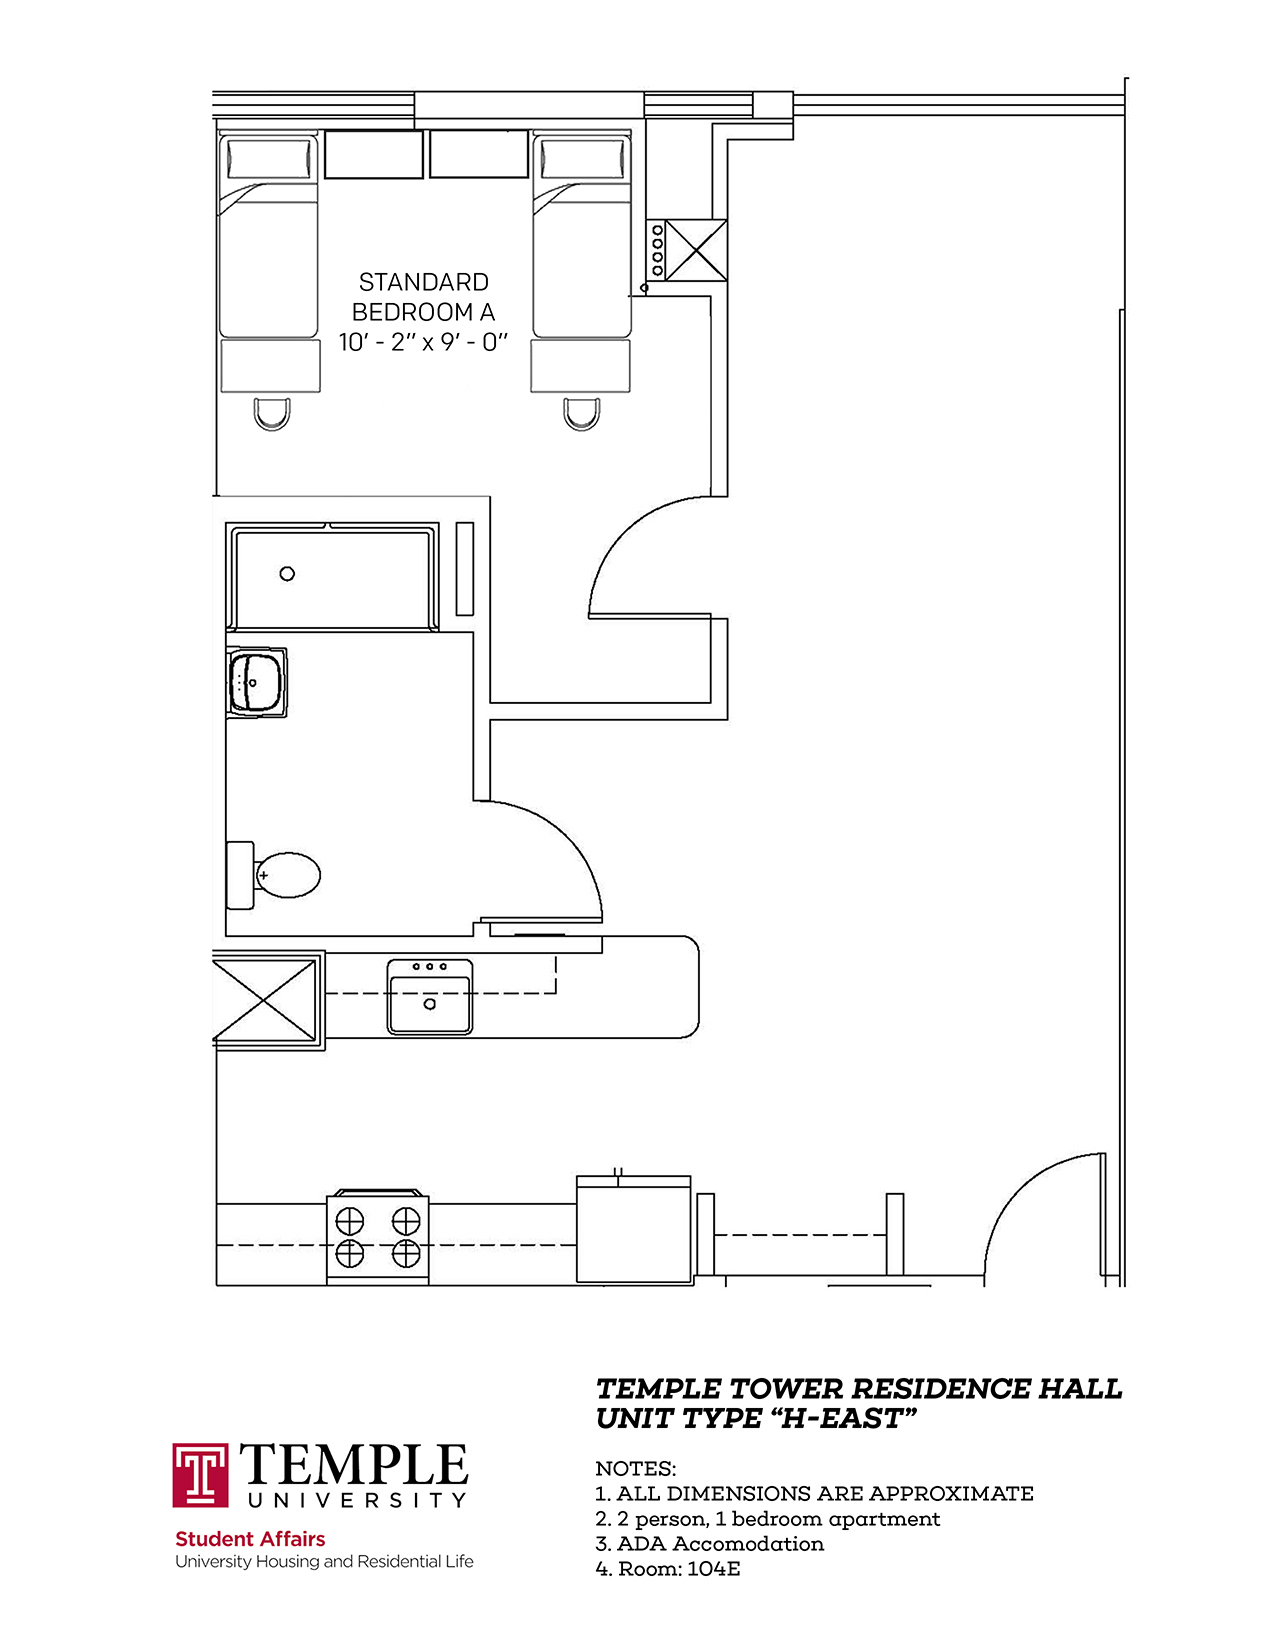 Temple Towers: Unit H East - 2 person, 1 bedroom Apartment